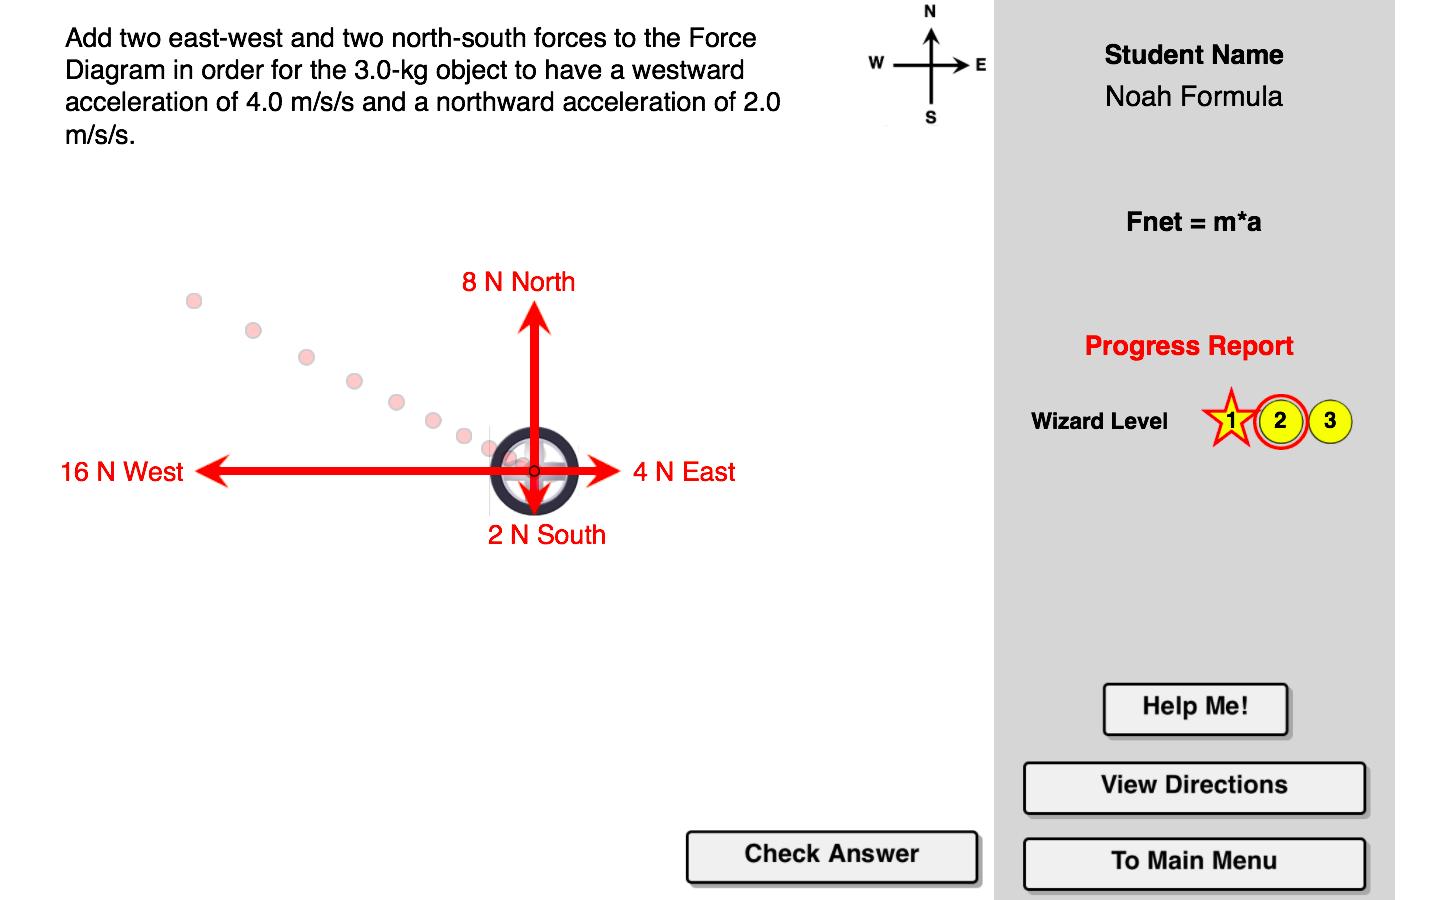 the fnet = m•a concept builder targets the concept of net force and its  relationship to mass and acceleration  learners are presented with a  physical